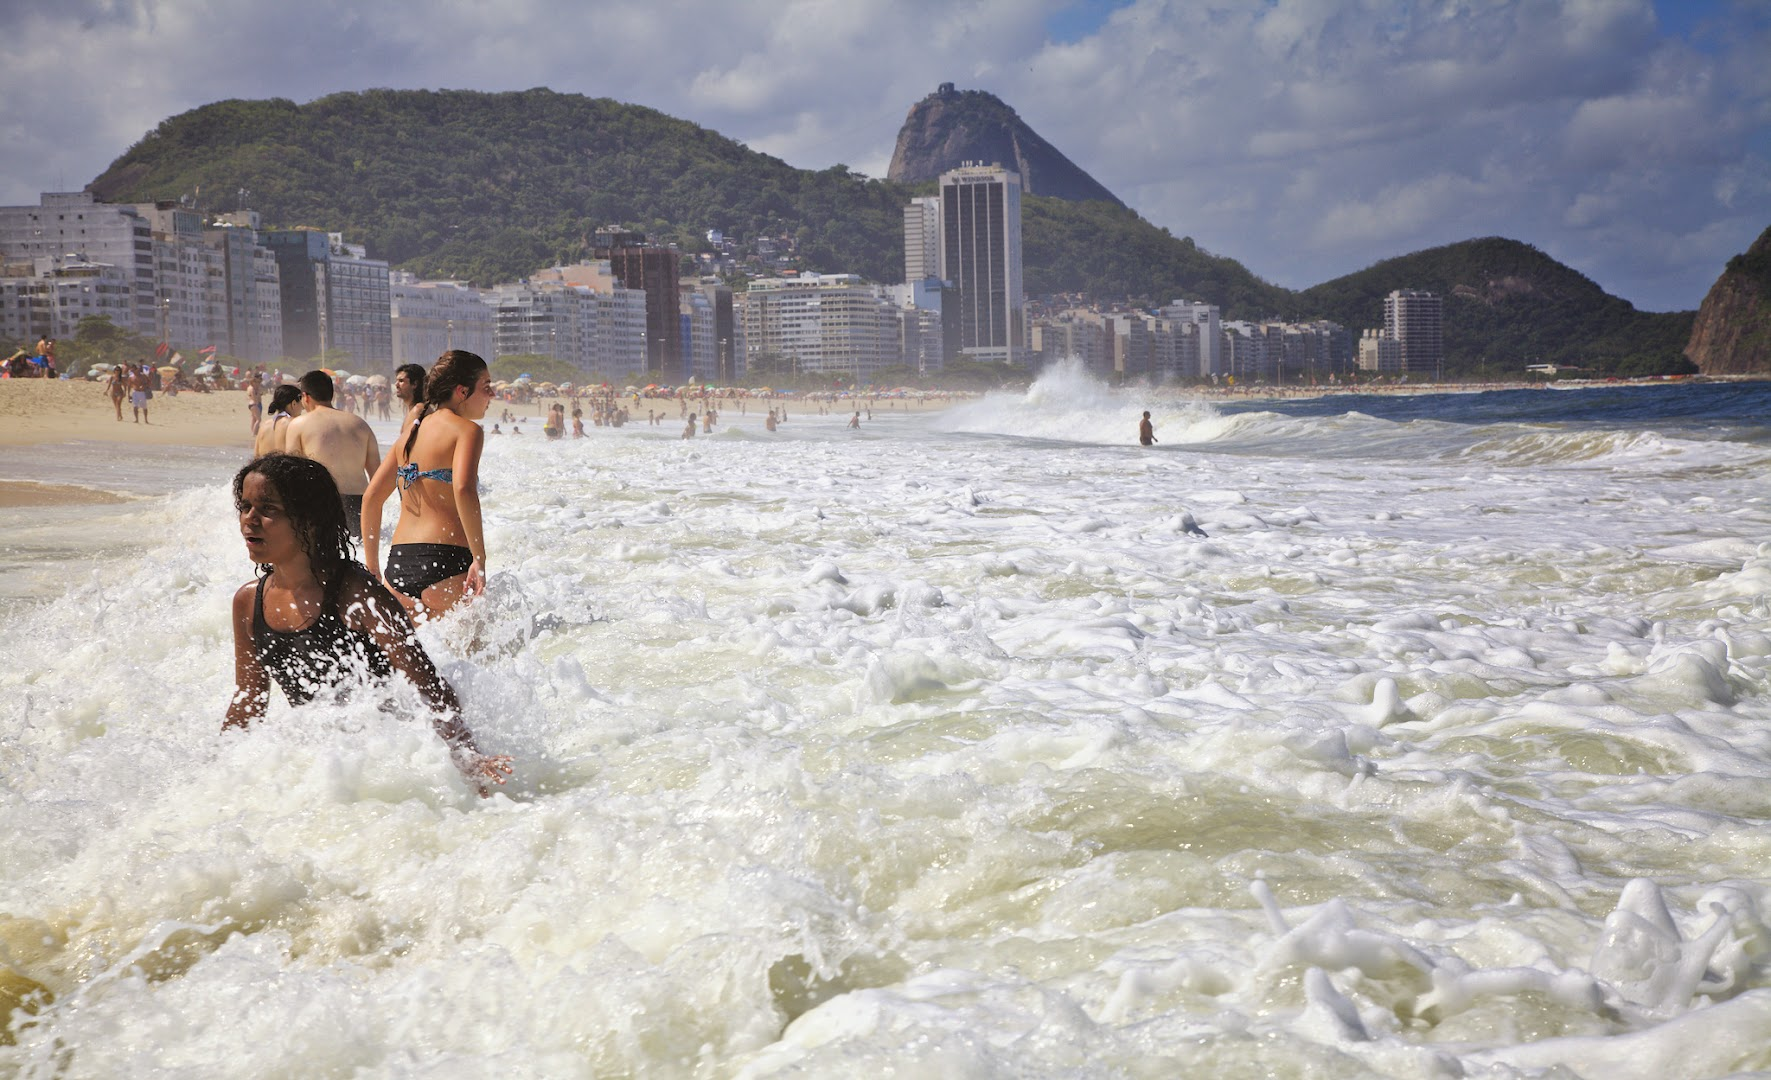 Waves are never small in Rio